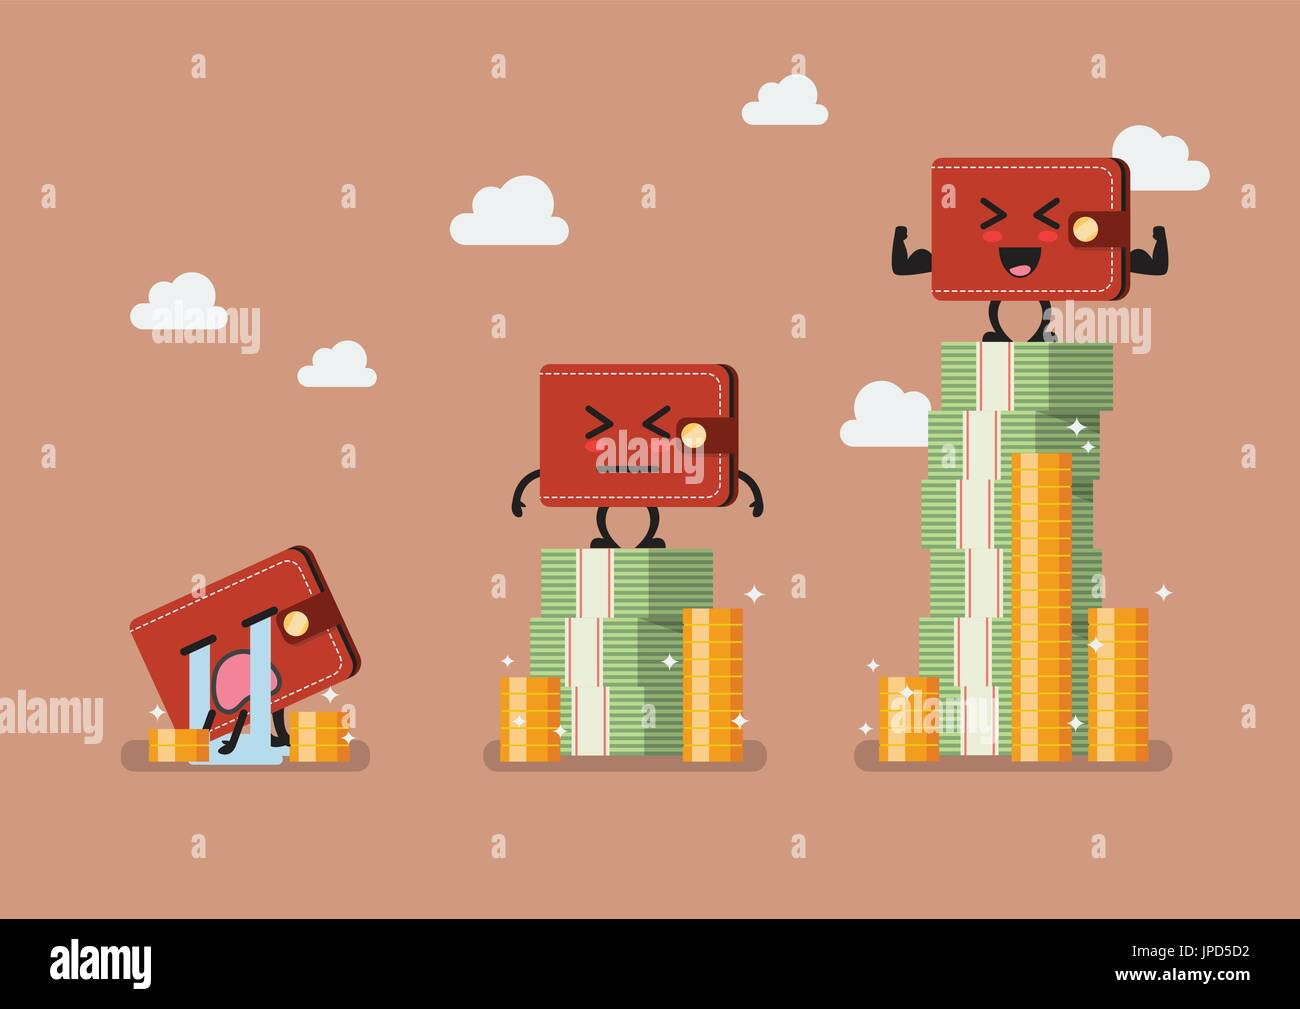 wallet with money infographic social stratification concept stock